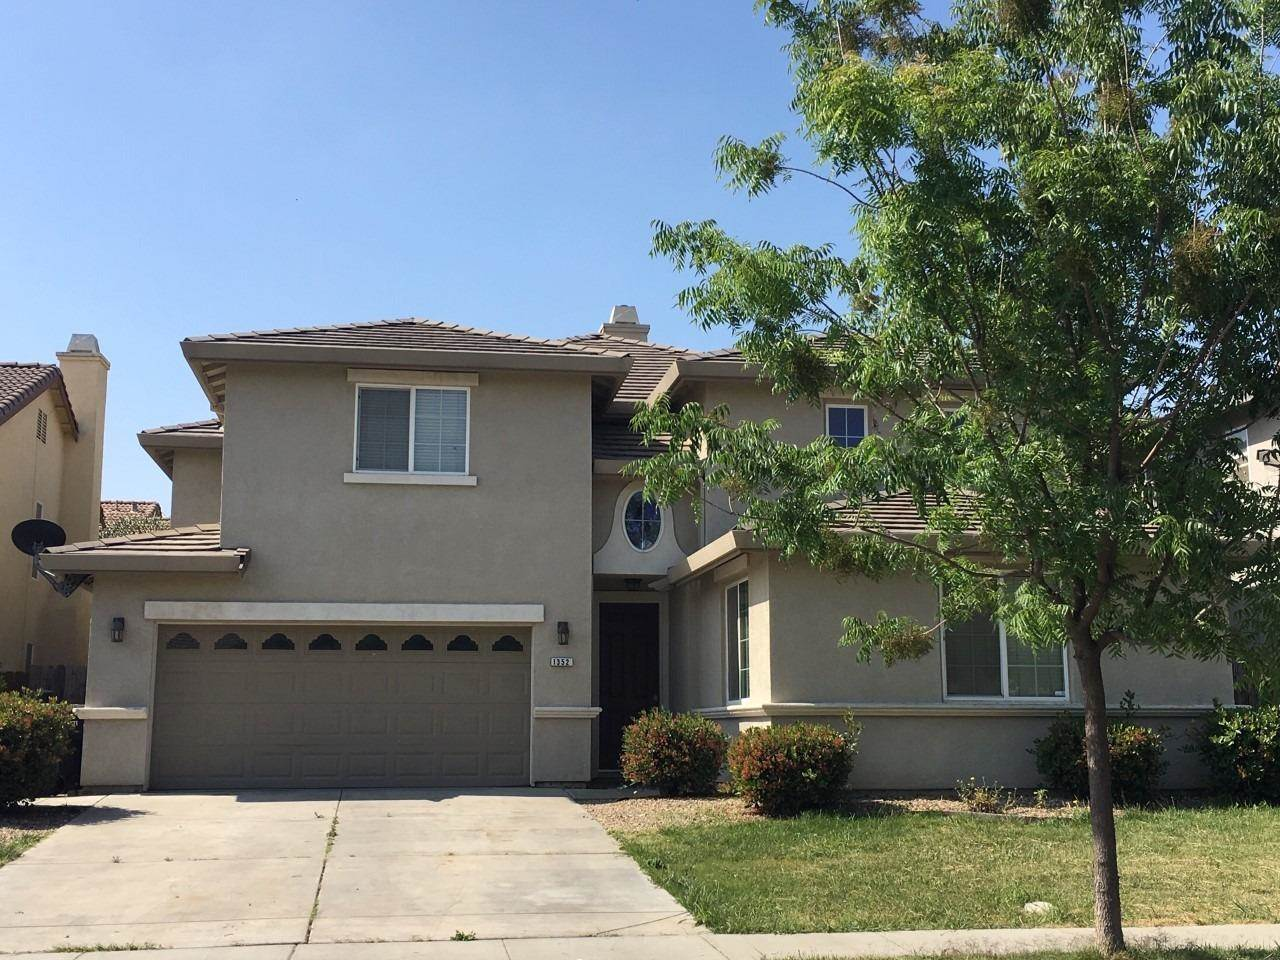 1352 New Forest, Patterson, California